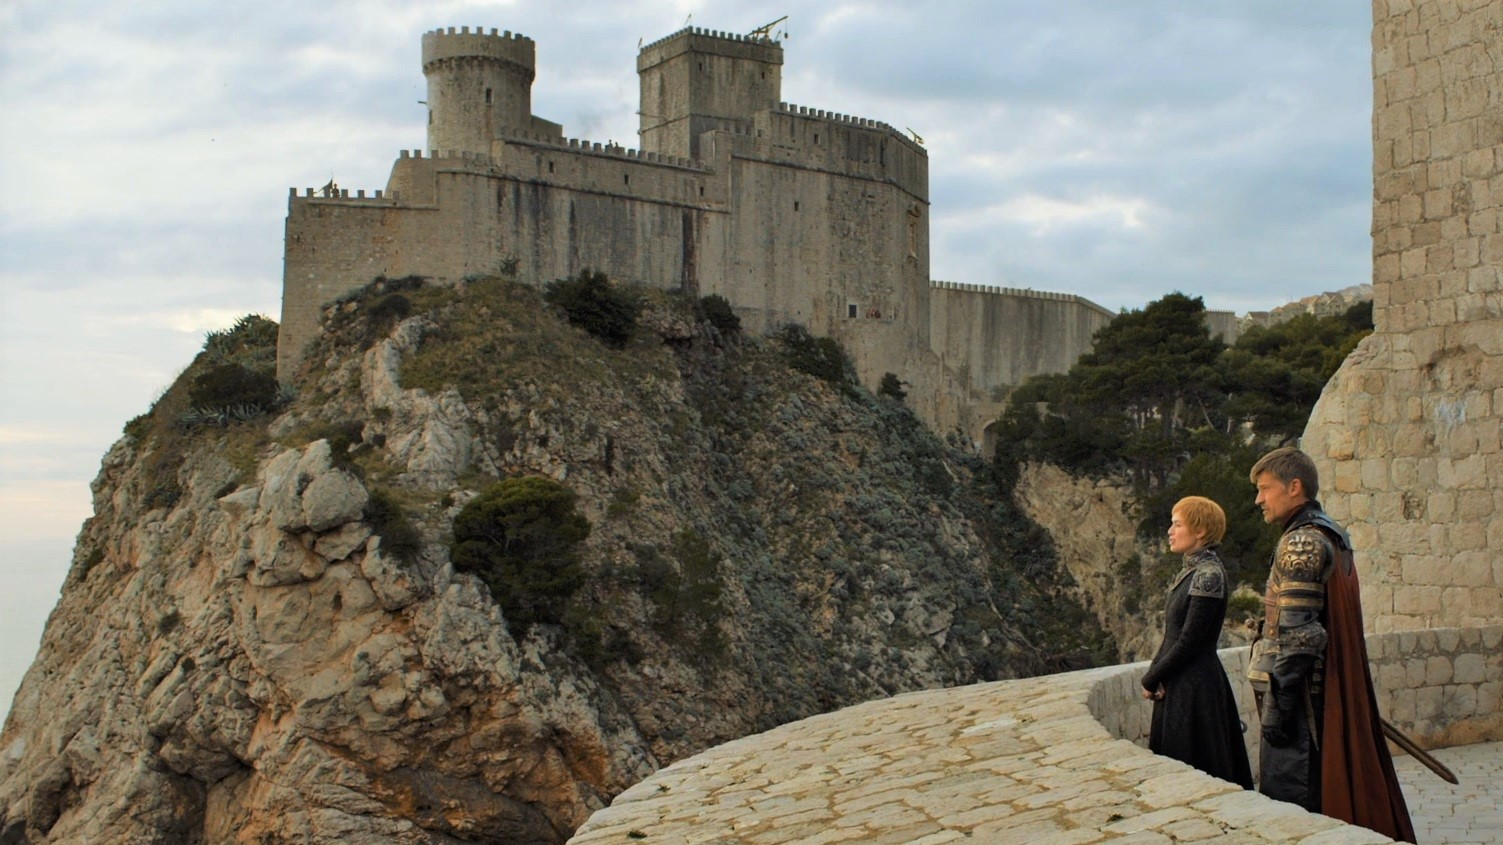 Game of Thrones Filming Locations in Croatia: Fort Lovrijenac